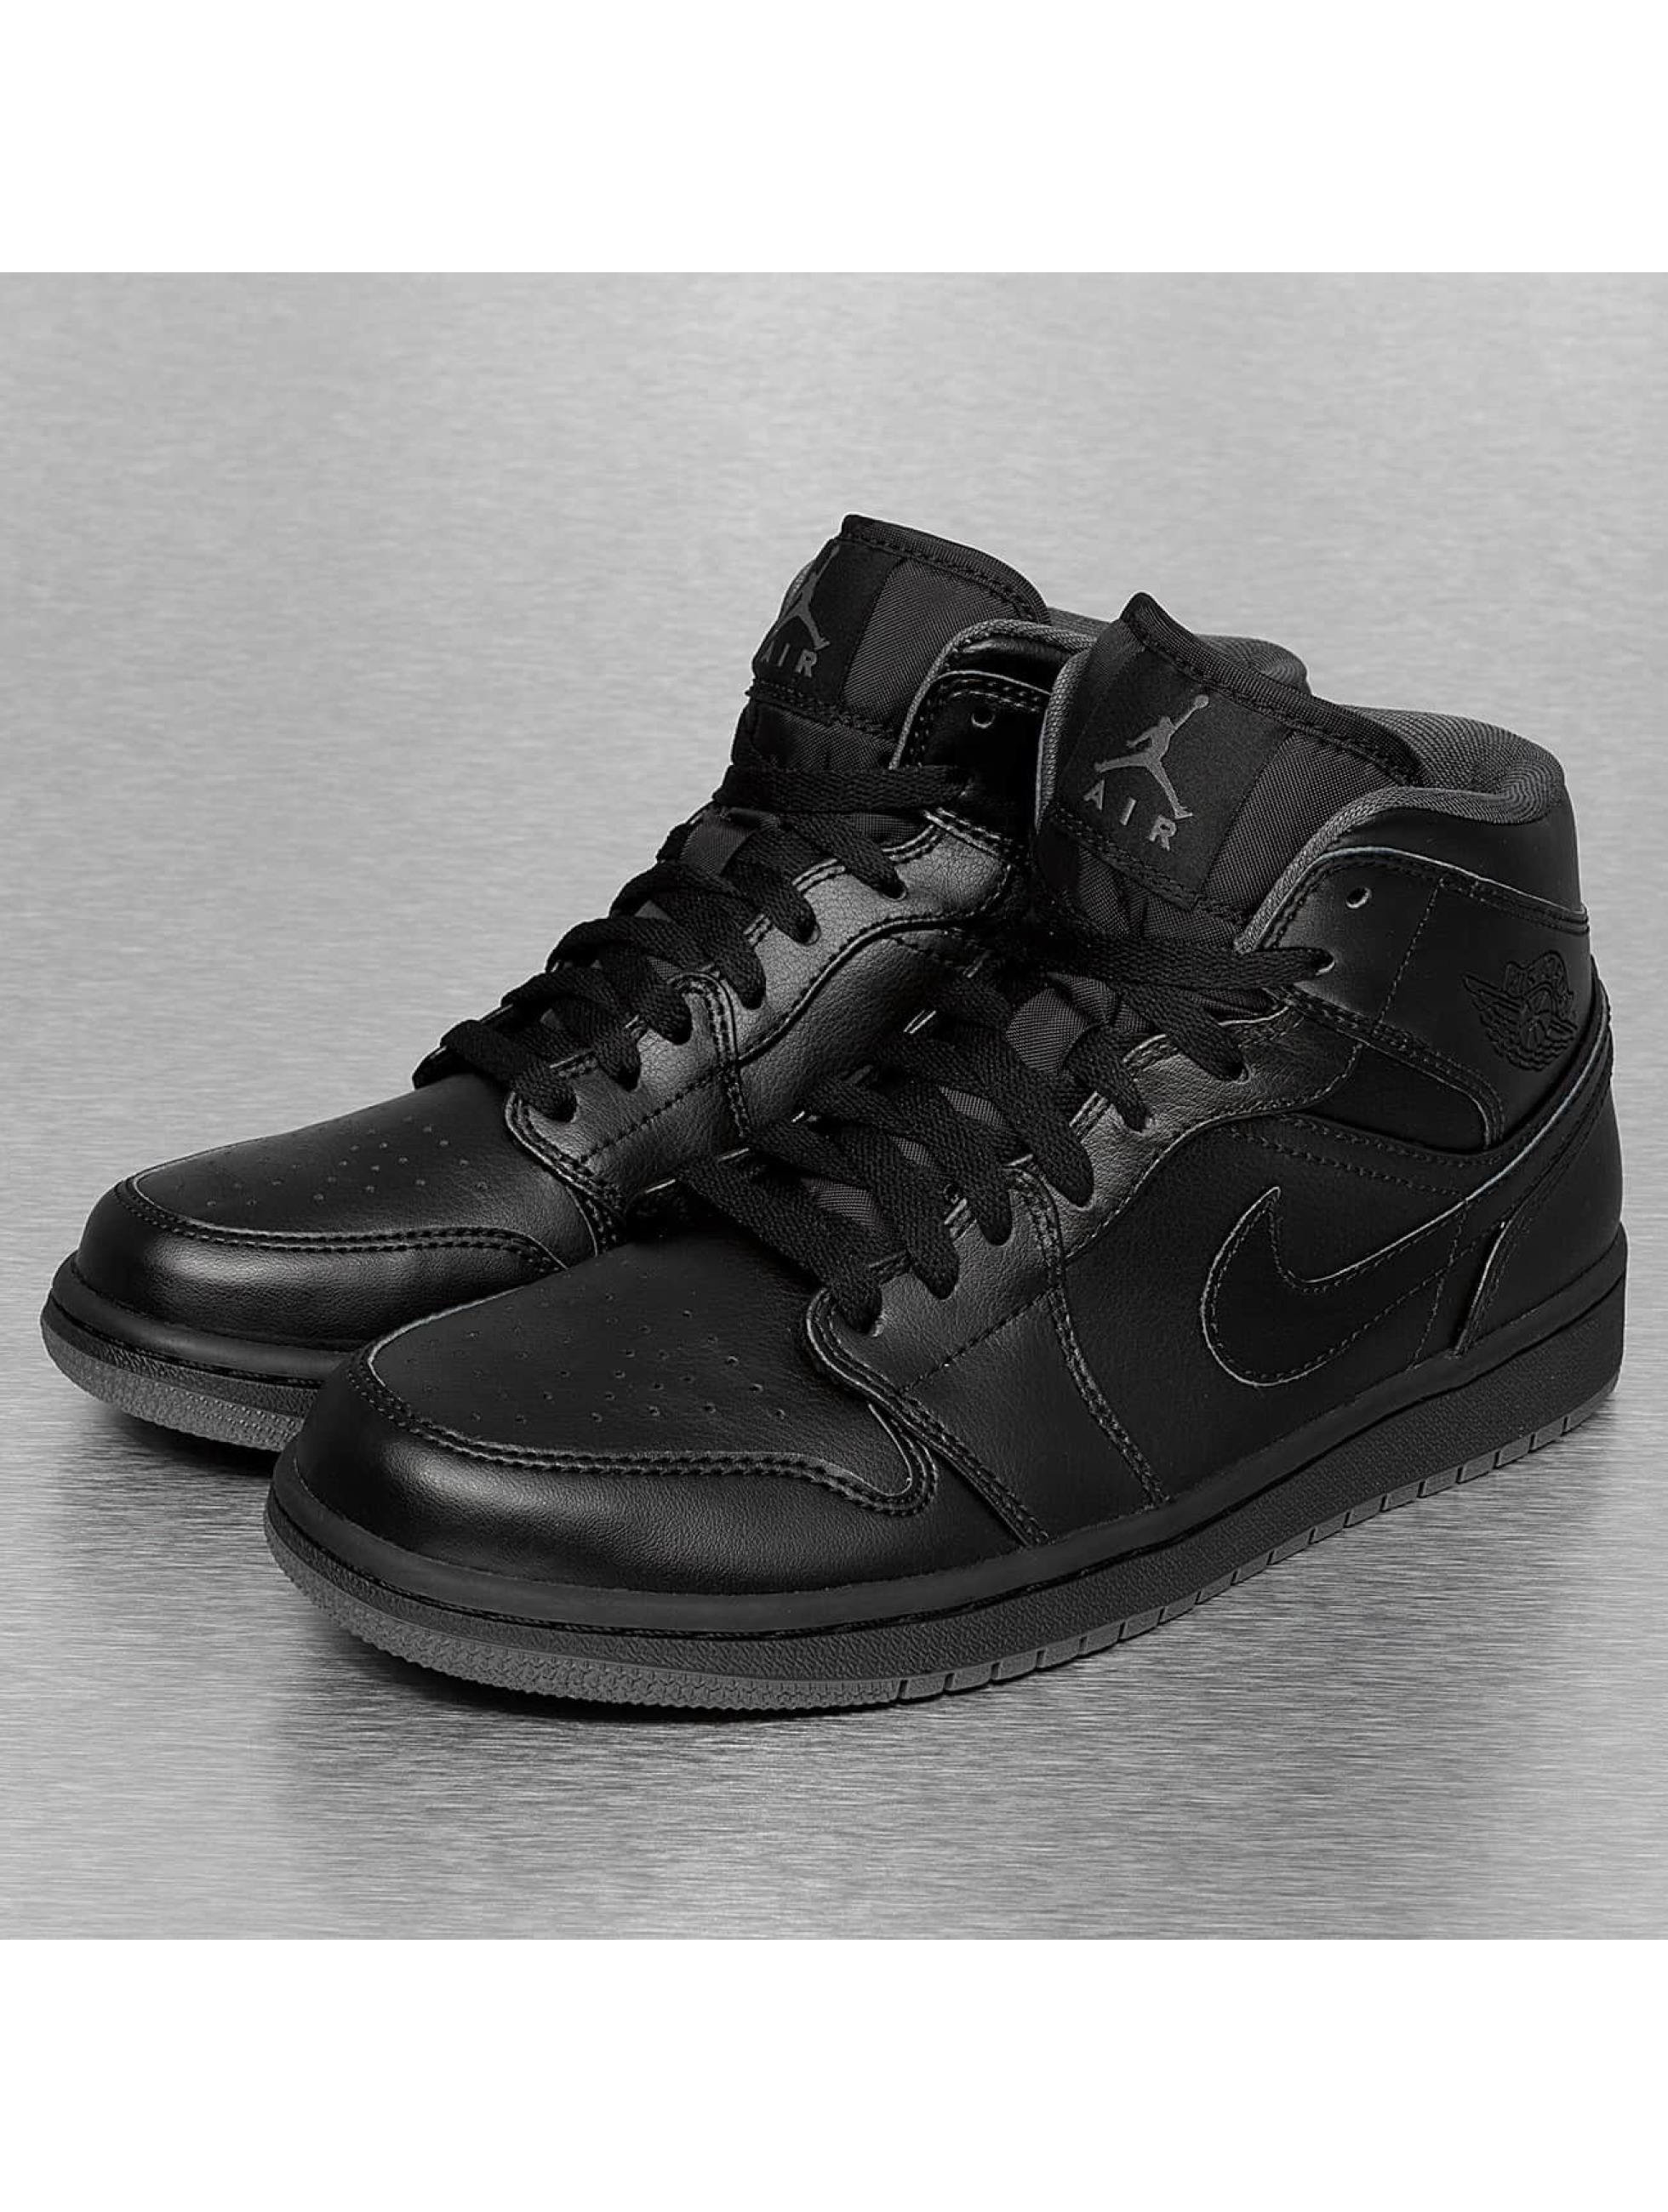 jordan air jordan 1 mid noir homme baskets jordan acheter pas cher chaussures 195715. Black Bedroom Furniture Sets. Home Design Ideas